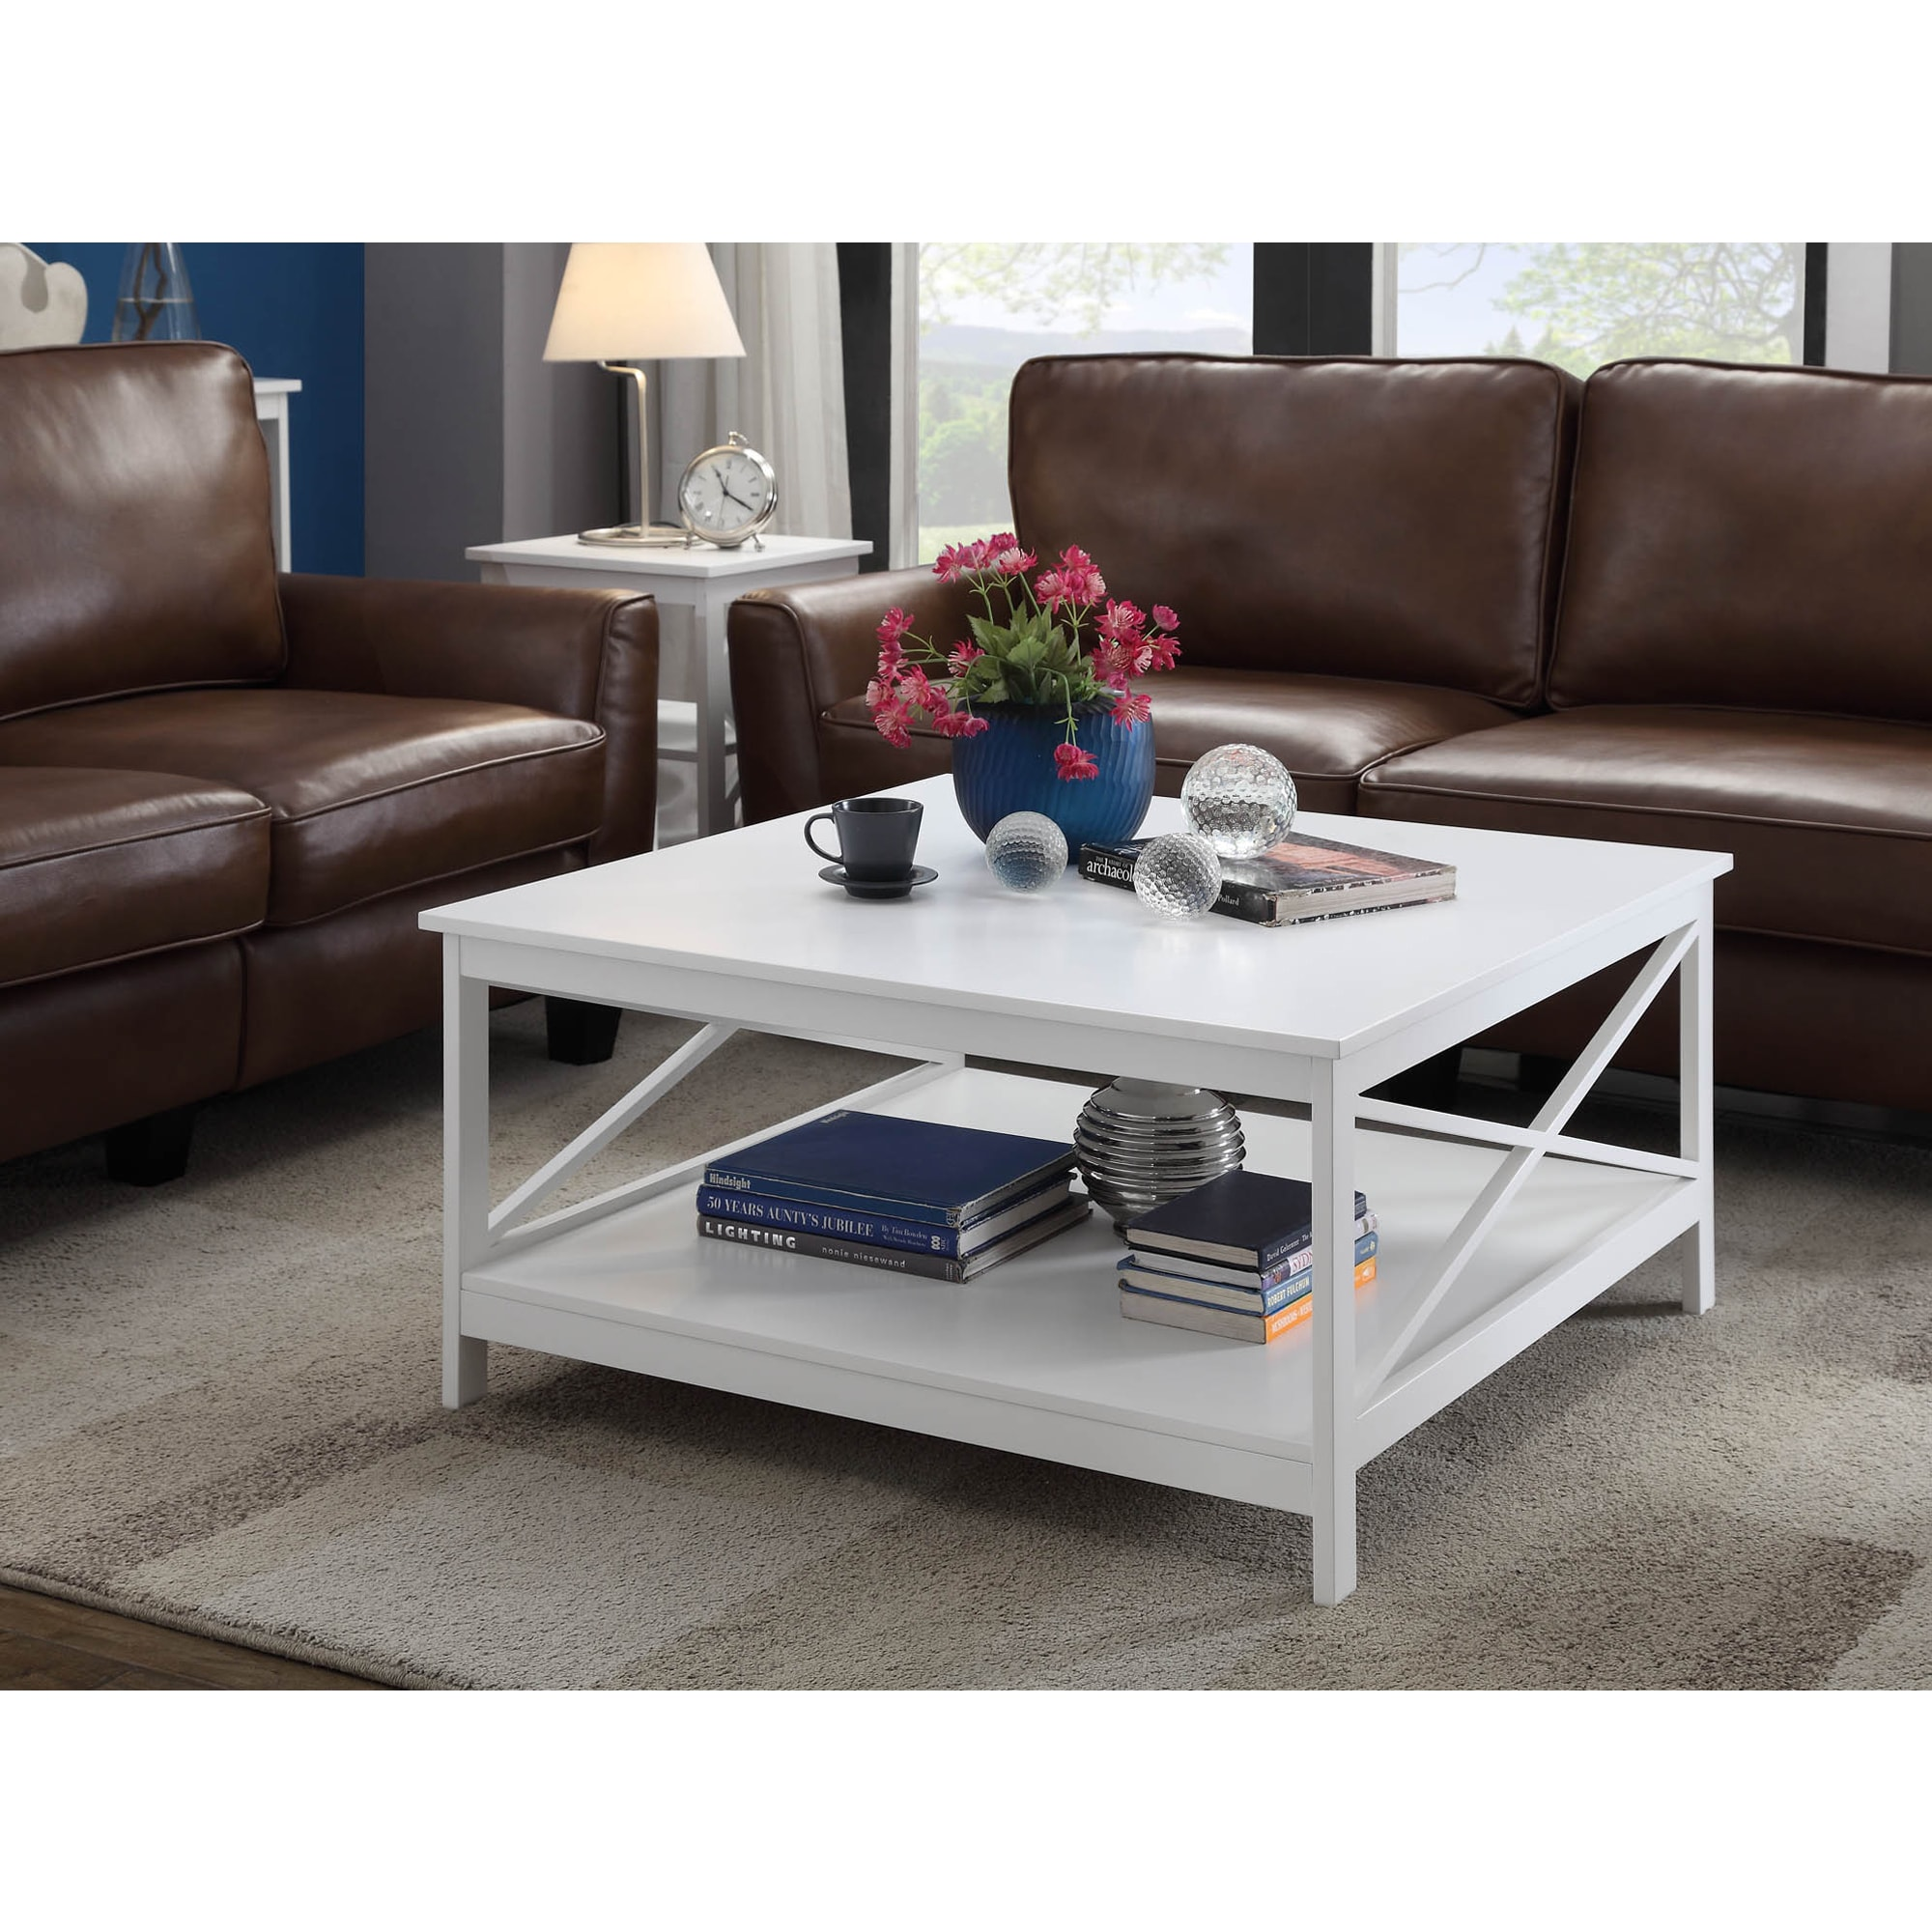 Charmant Convenience Concepts Oxford 36 Inch Square Coffee Table